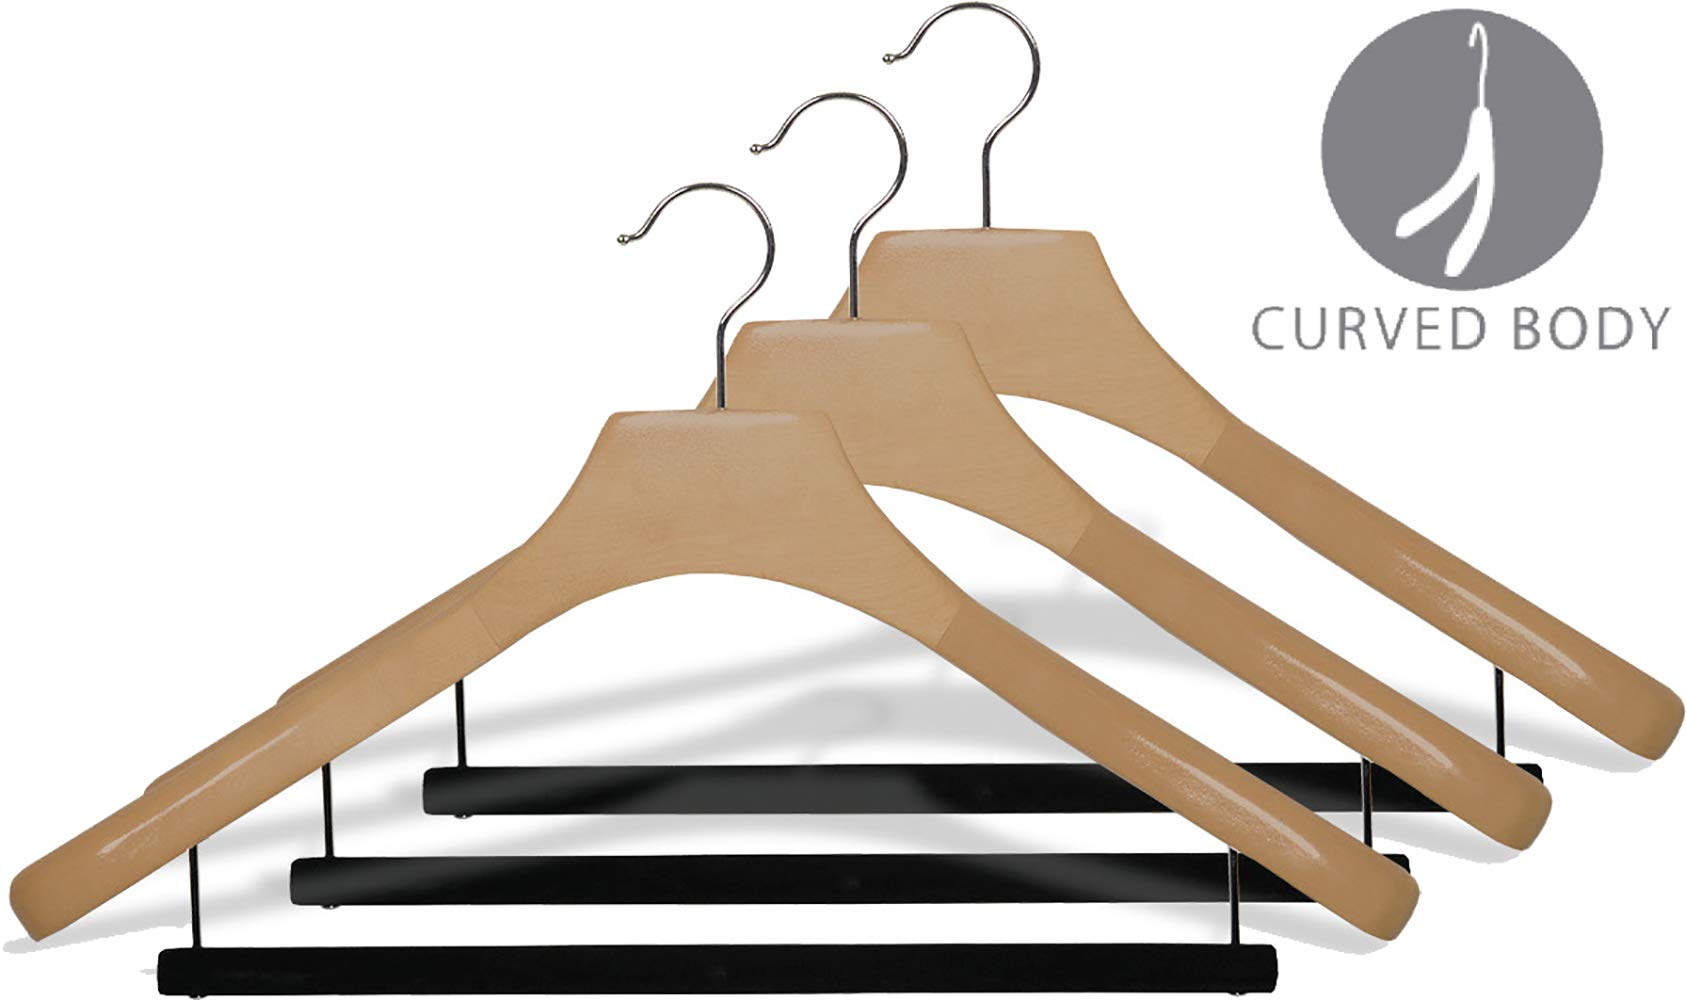 Deluxe Wooden Suit Hanger with Velvet Bar, Natural Finish & Chrome Swivel Hook, Large 2 Inch Wide Contoured Coat & Jacket Hangers (Set of 24) by The Great American Hanger Company by The Great American Hanger Company (Image #2)